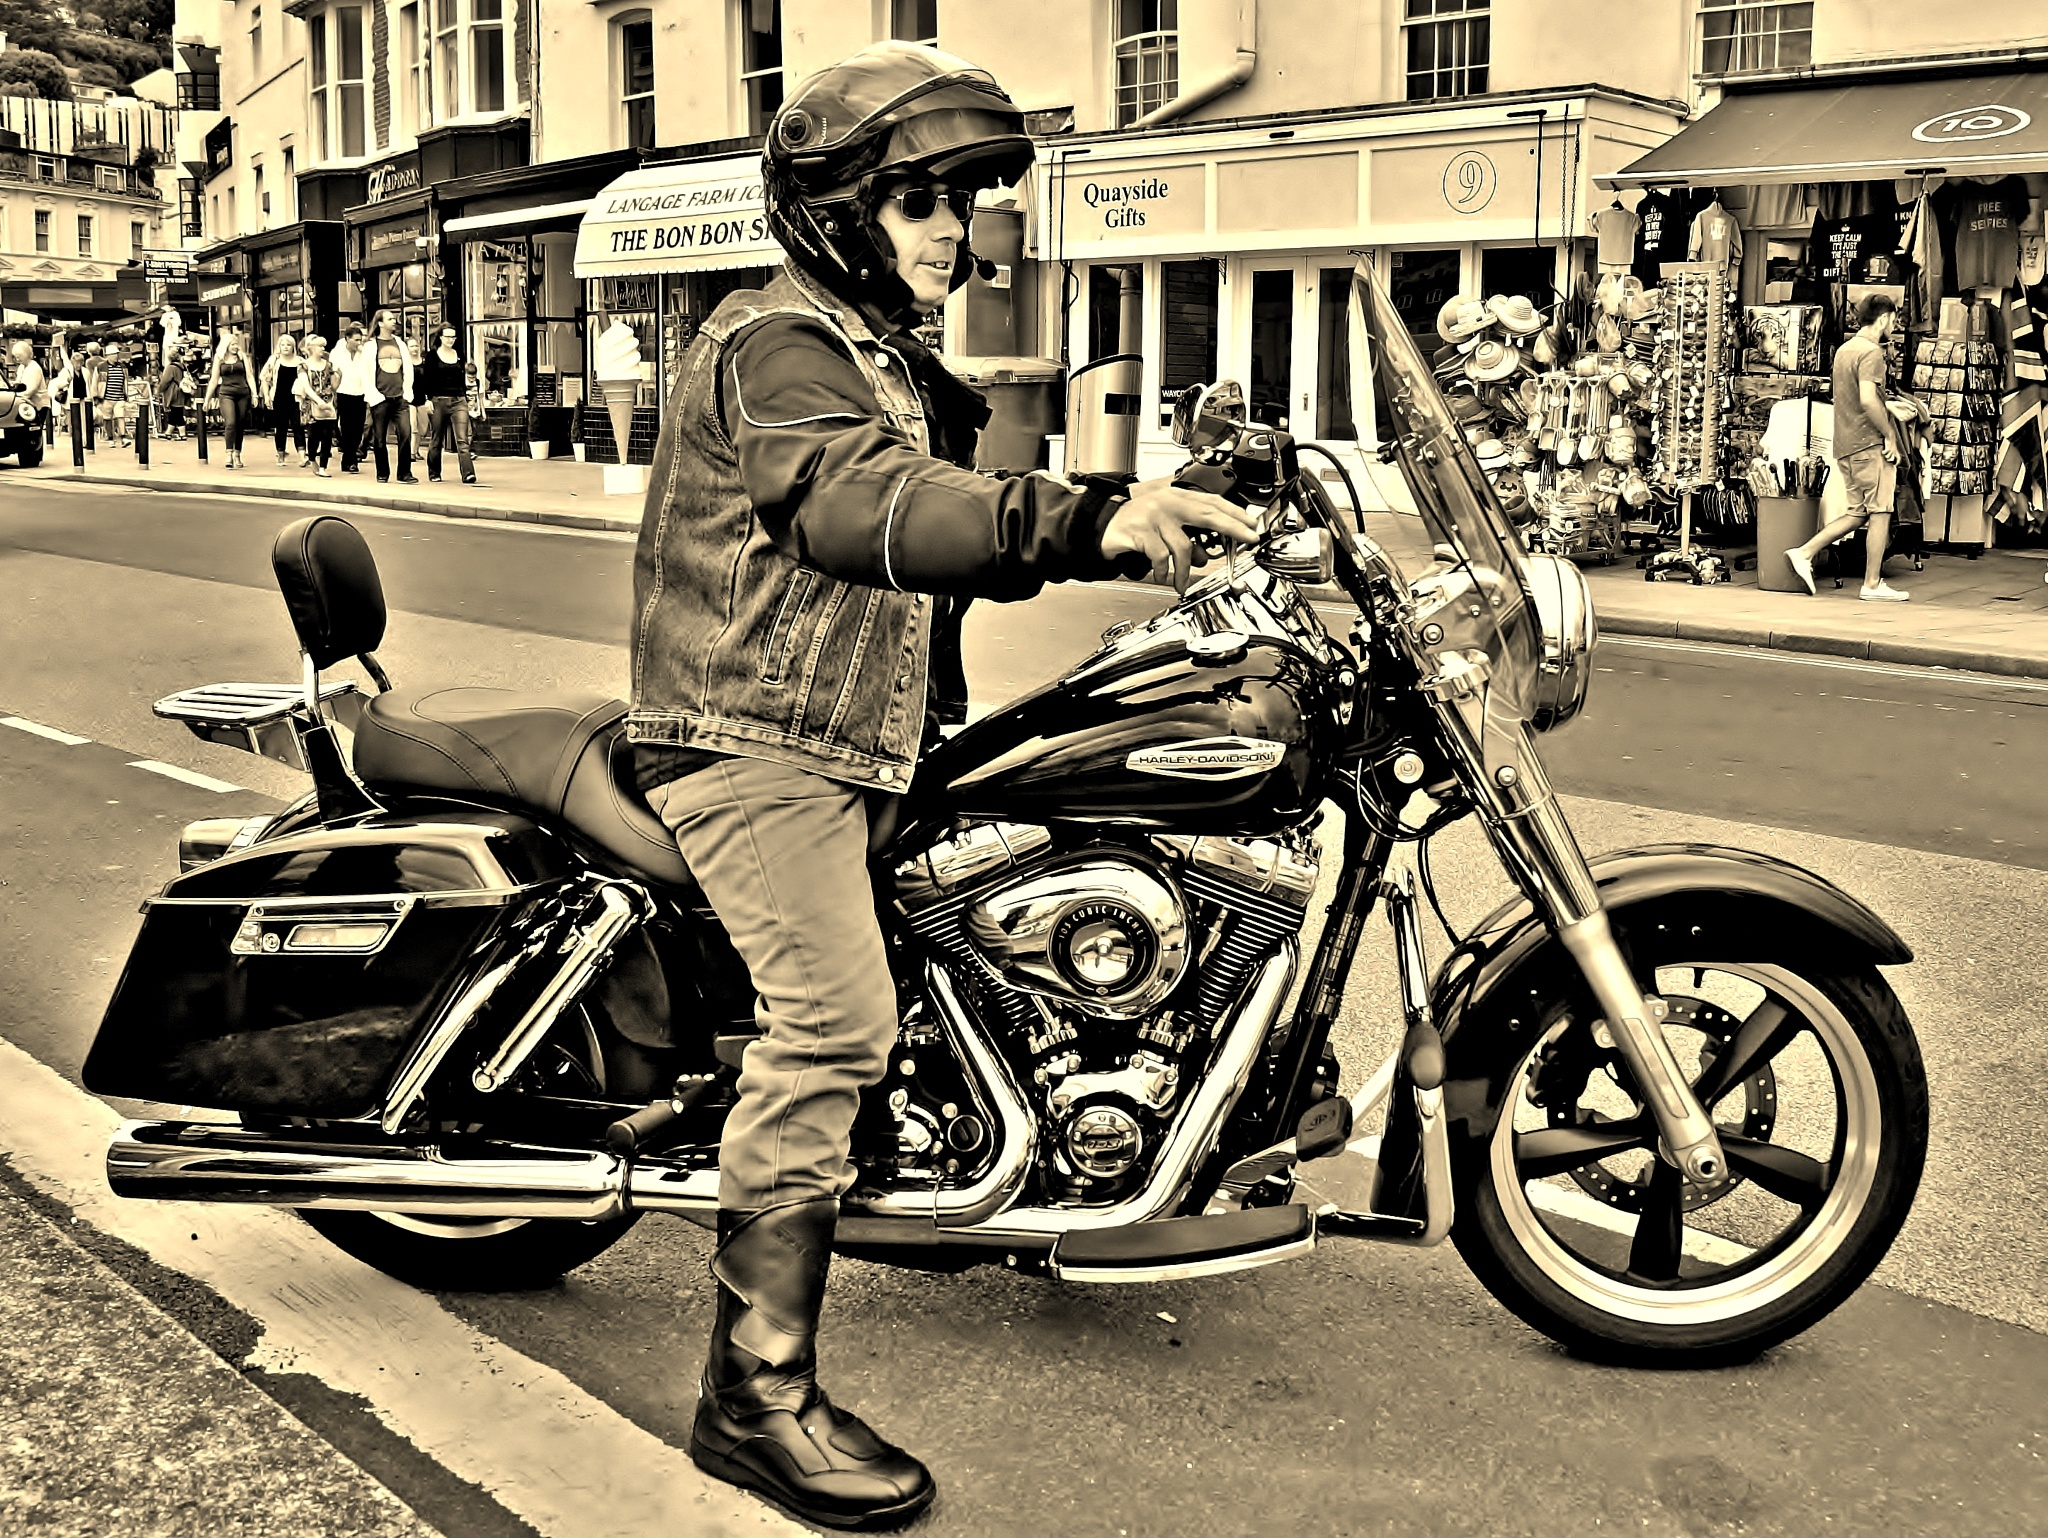 Harley Rider - Sepia by paul.hosker